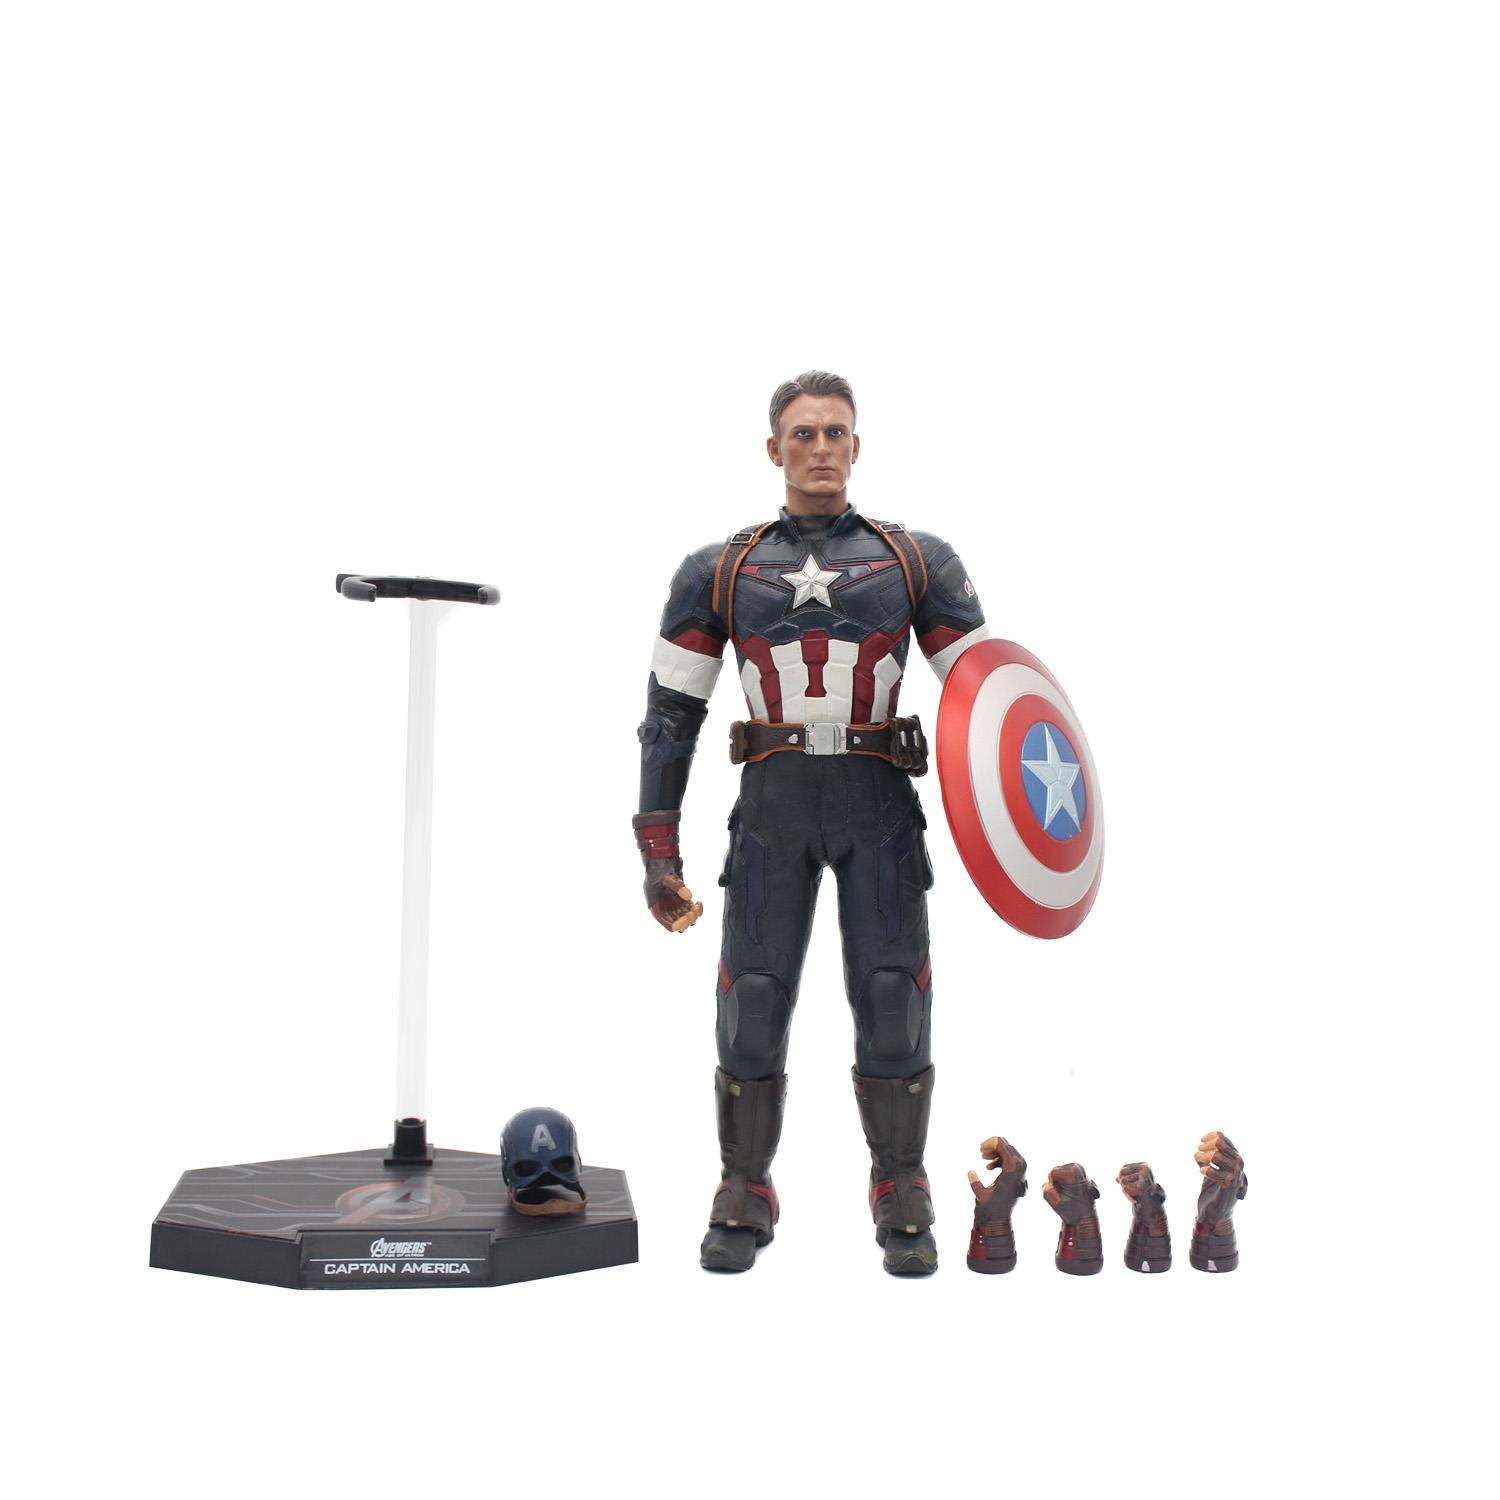 Captain America 12in 1pcs/set PVC Figures The Avenger Marvel Captain America Action Anime Figures Kids Gifts Toys 12pcs set children kids toys gift mini figures toys little pet animal cat dog lps action figures